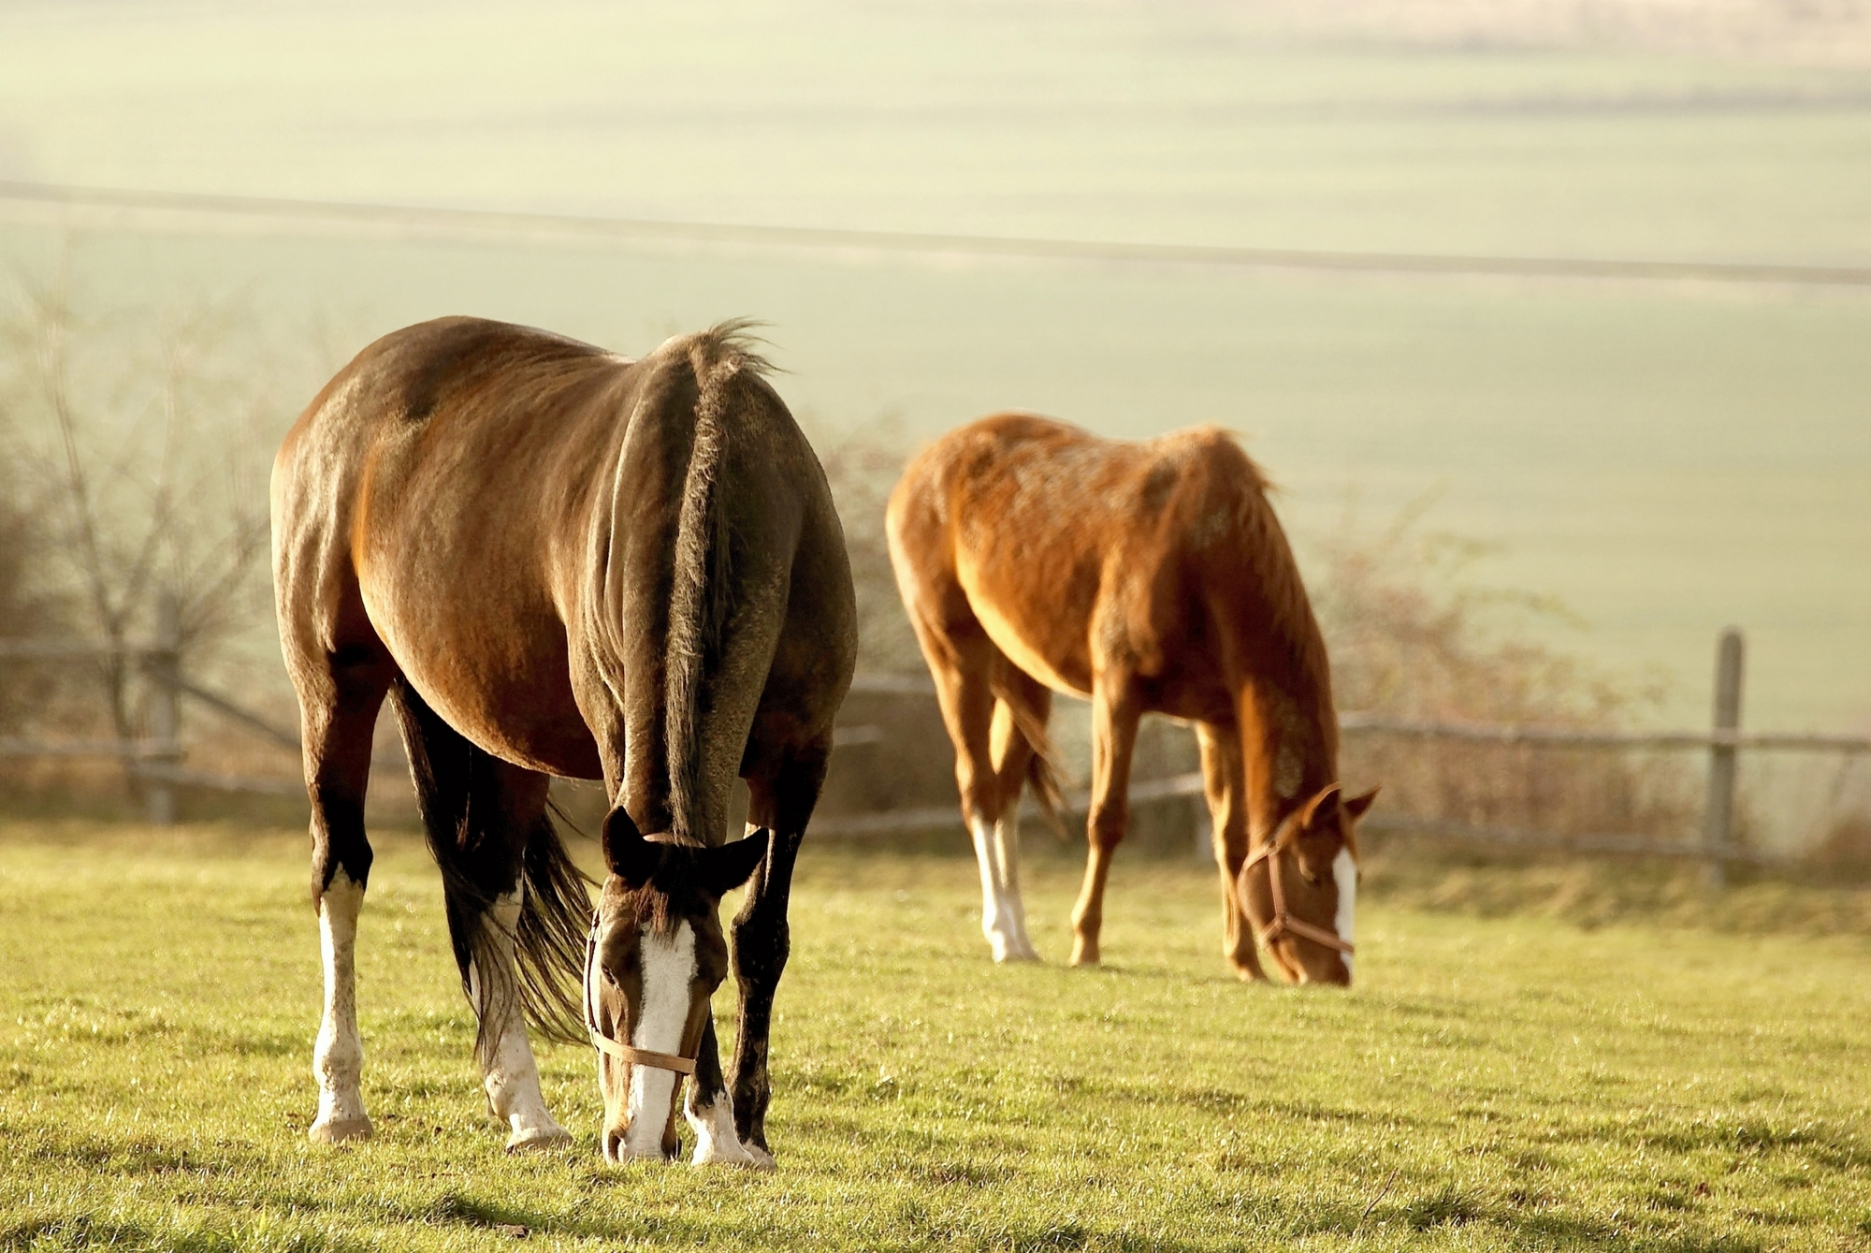 Two horses grazing in a scenic pasture.